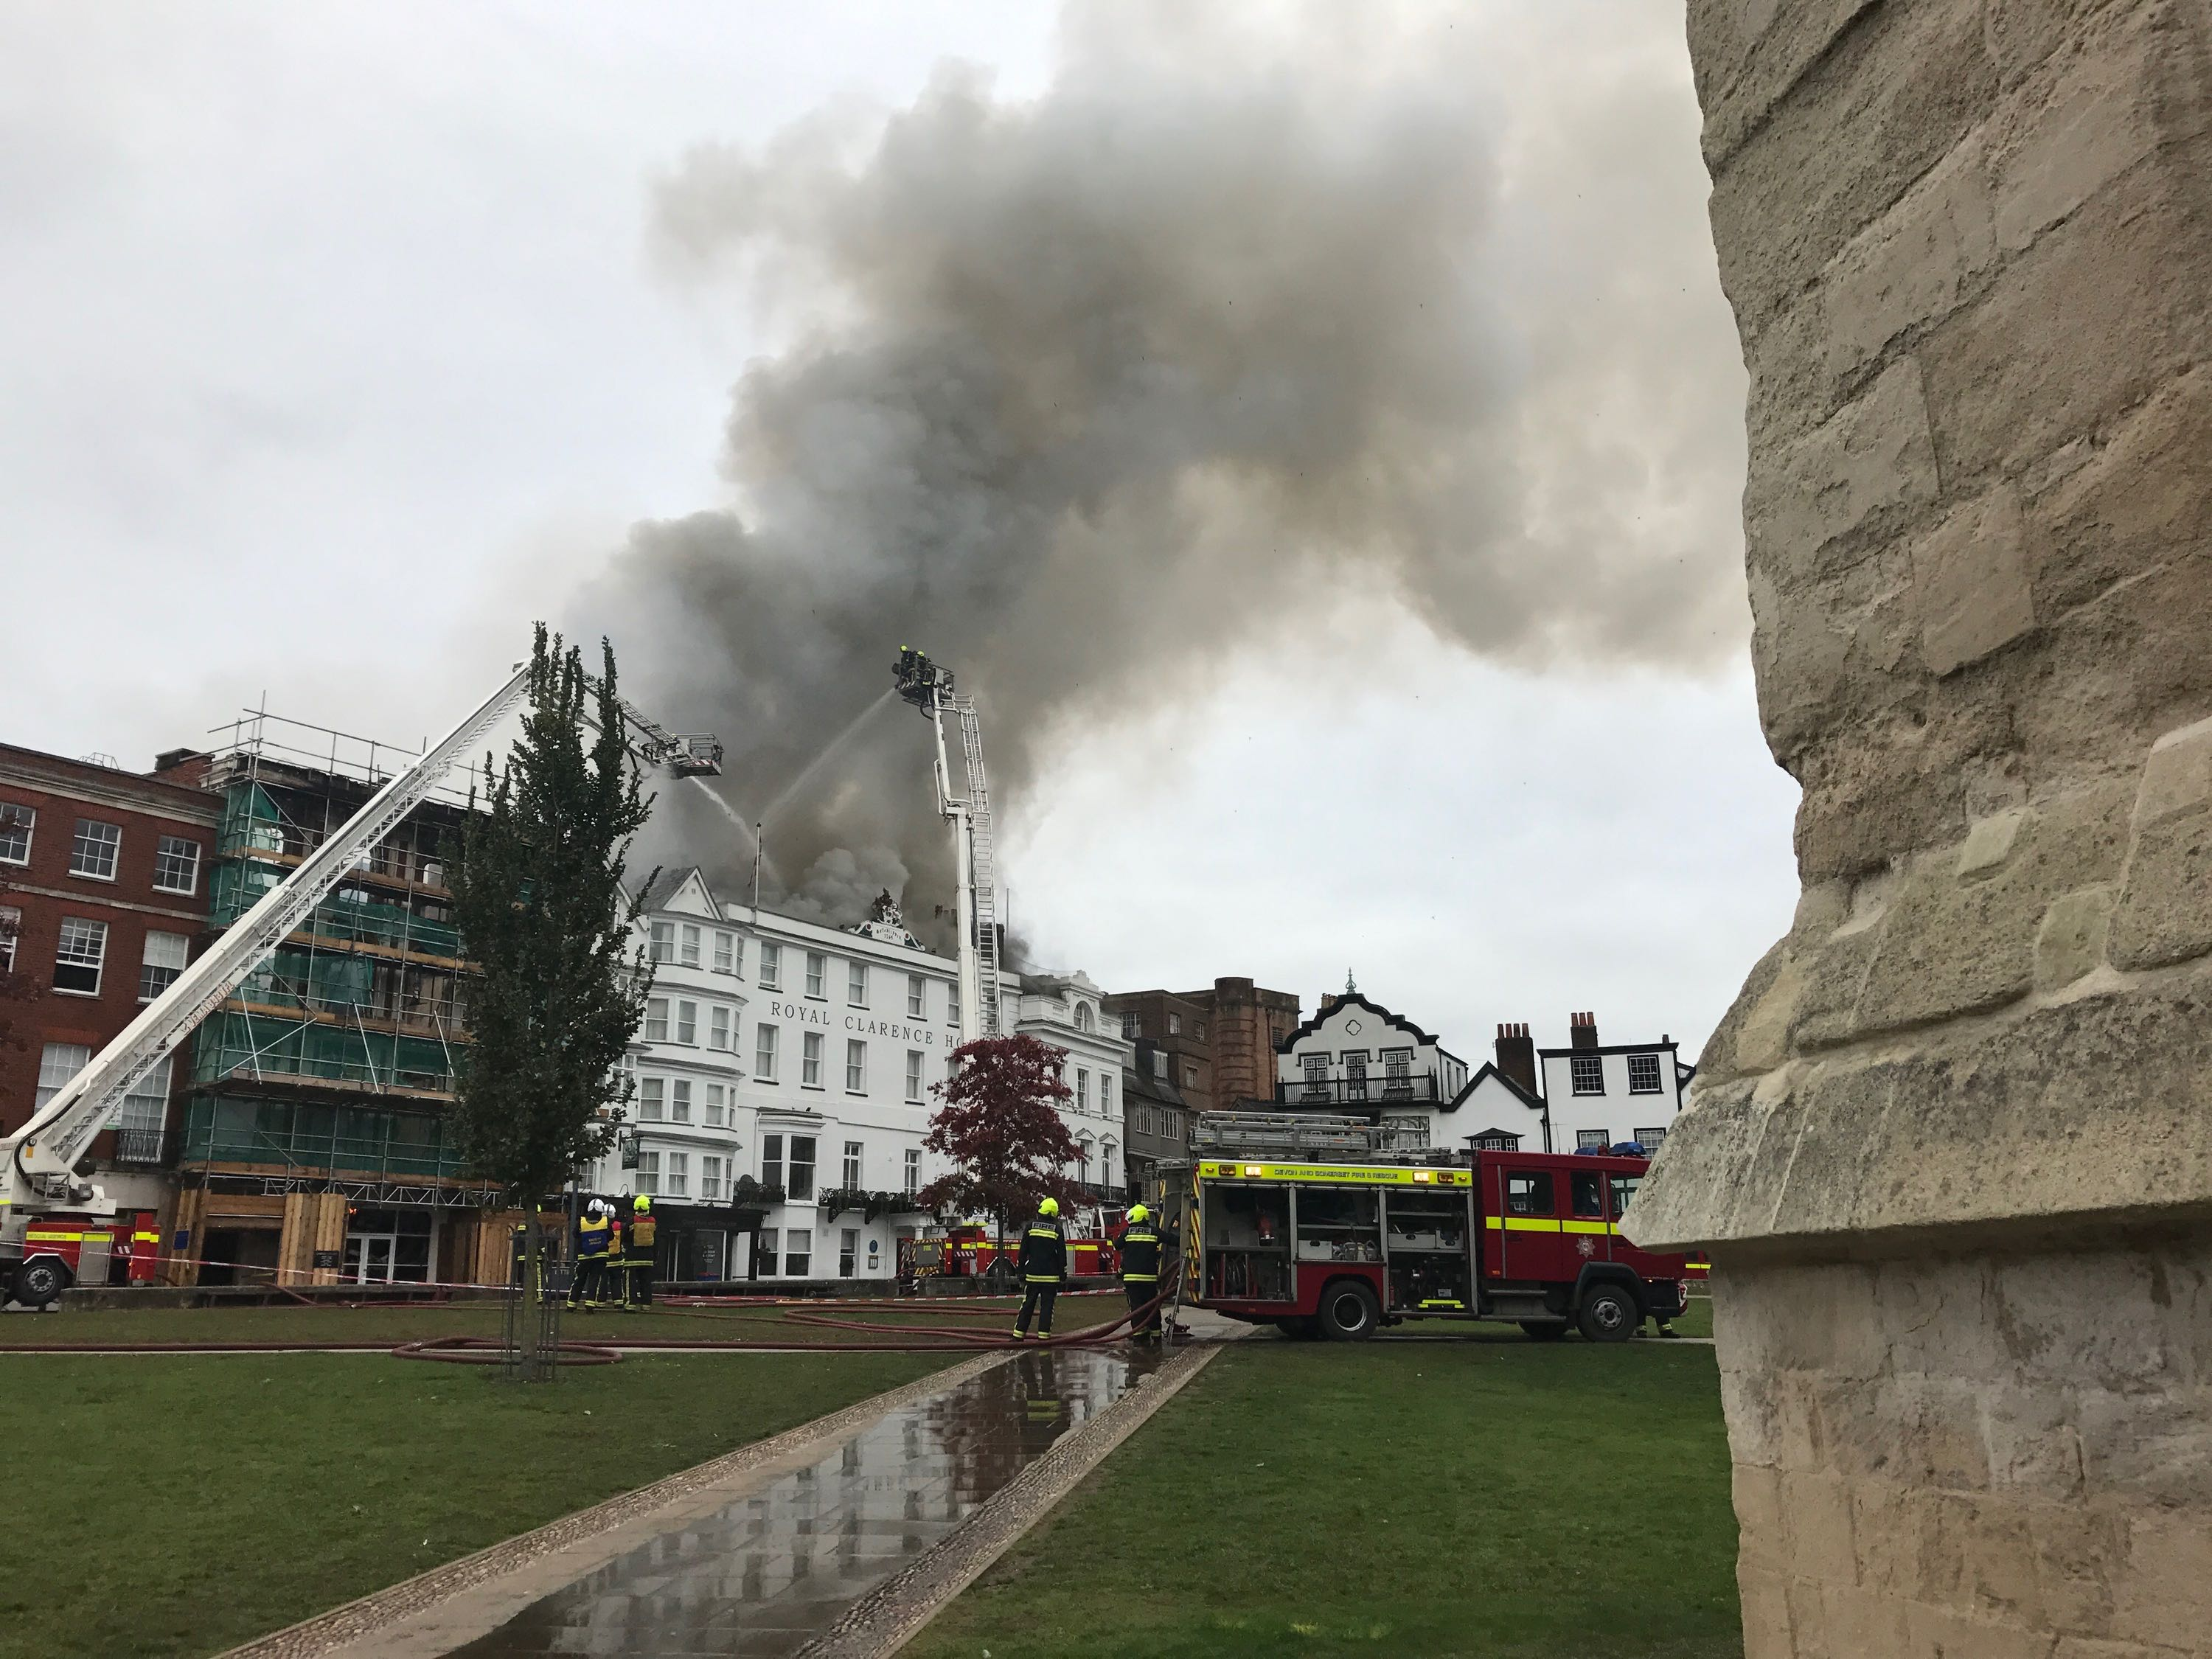 Smoke Billows From Exeter Hotel Roof After Major Fire